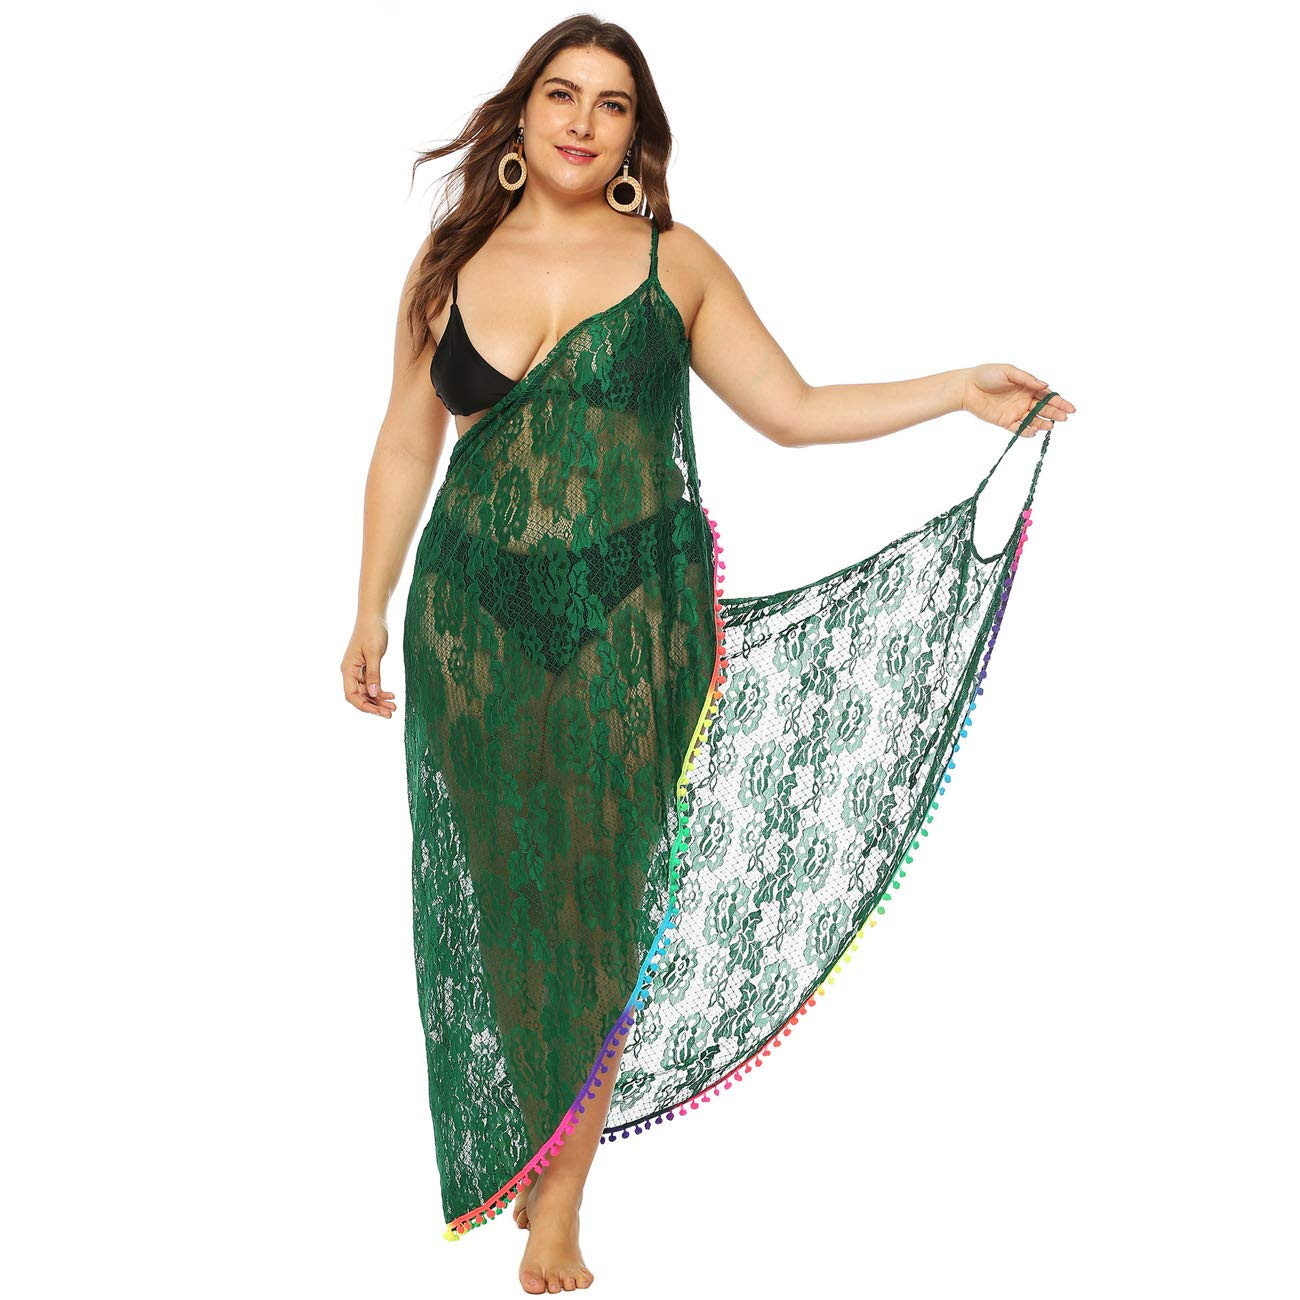 8f66d098d GERINLY Plus Size Sarong Dress Women Spaghetti Strap Kaftan Cover Up Sexy  Lace Backless Wrap (Green) at Amazon Women's Clothing store: